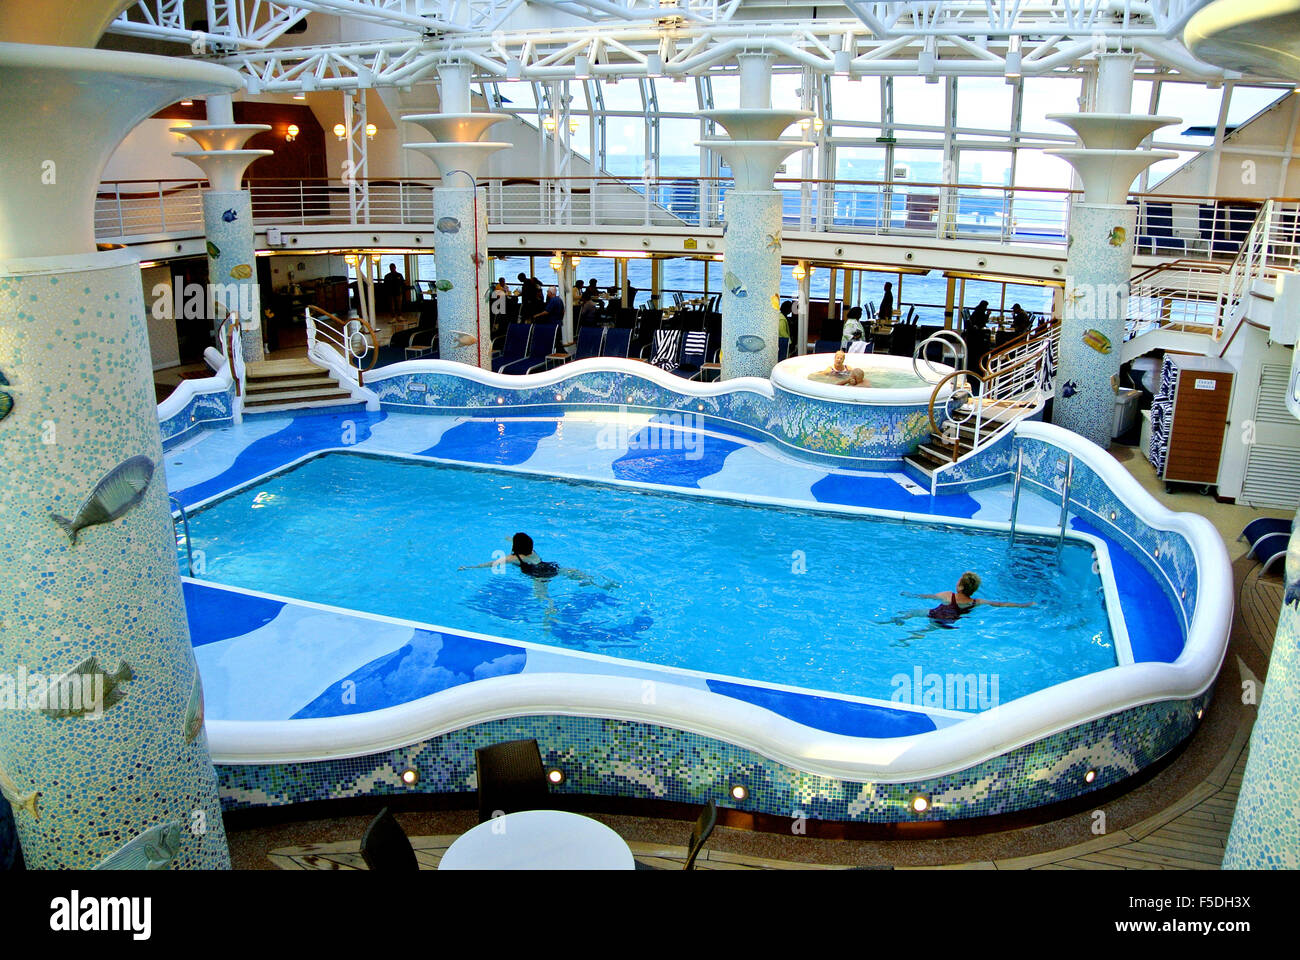 View of swimming pool on royal princess cruise ship stock photo royalty free image 89423934 for River cruise ships with swimming pool